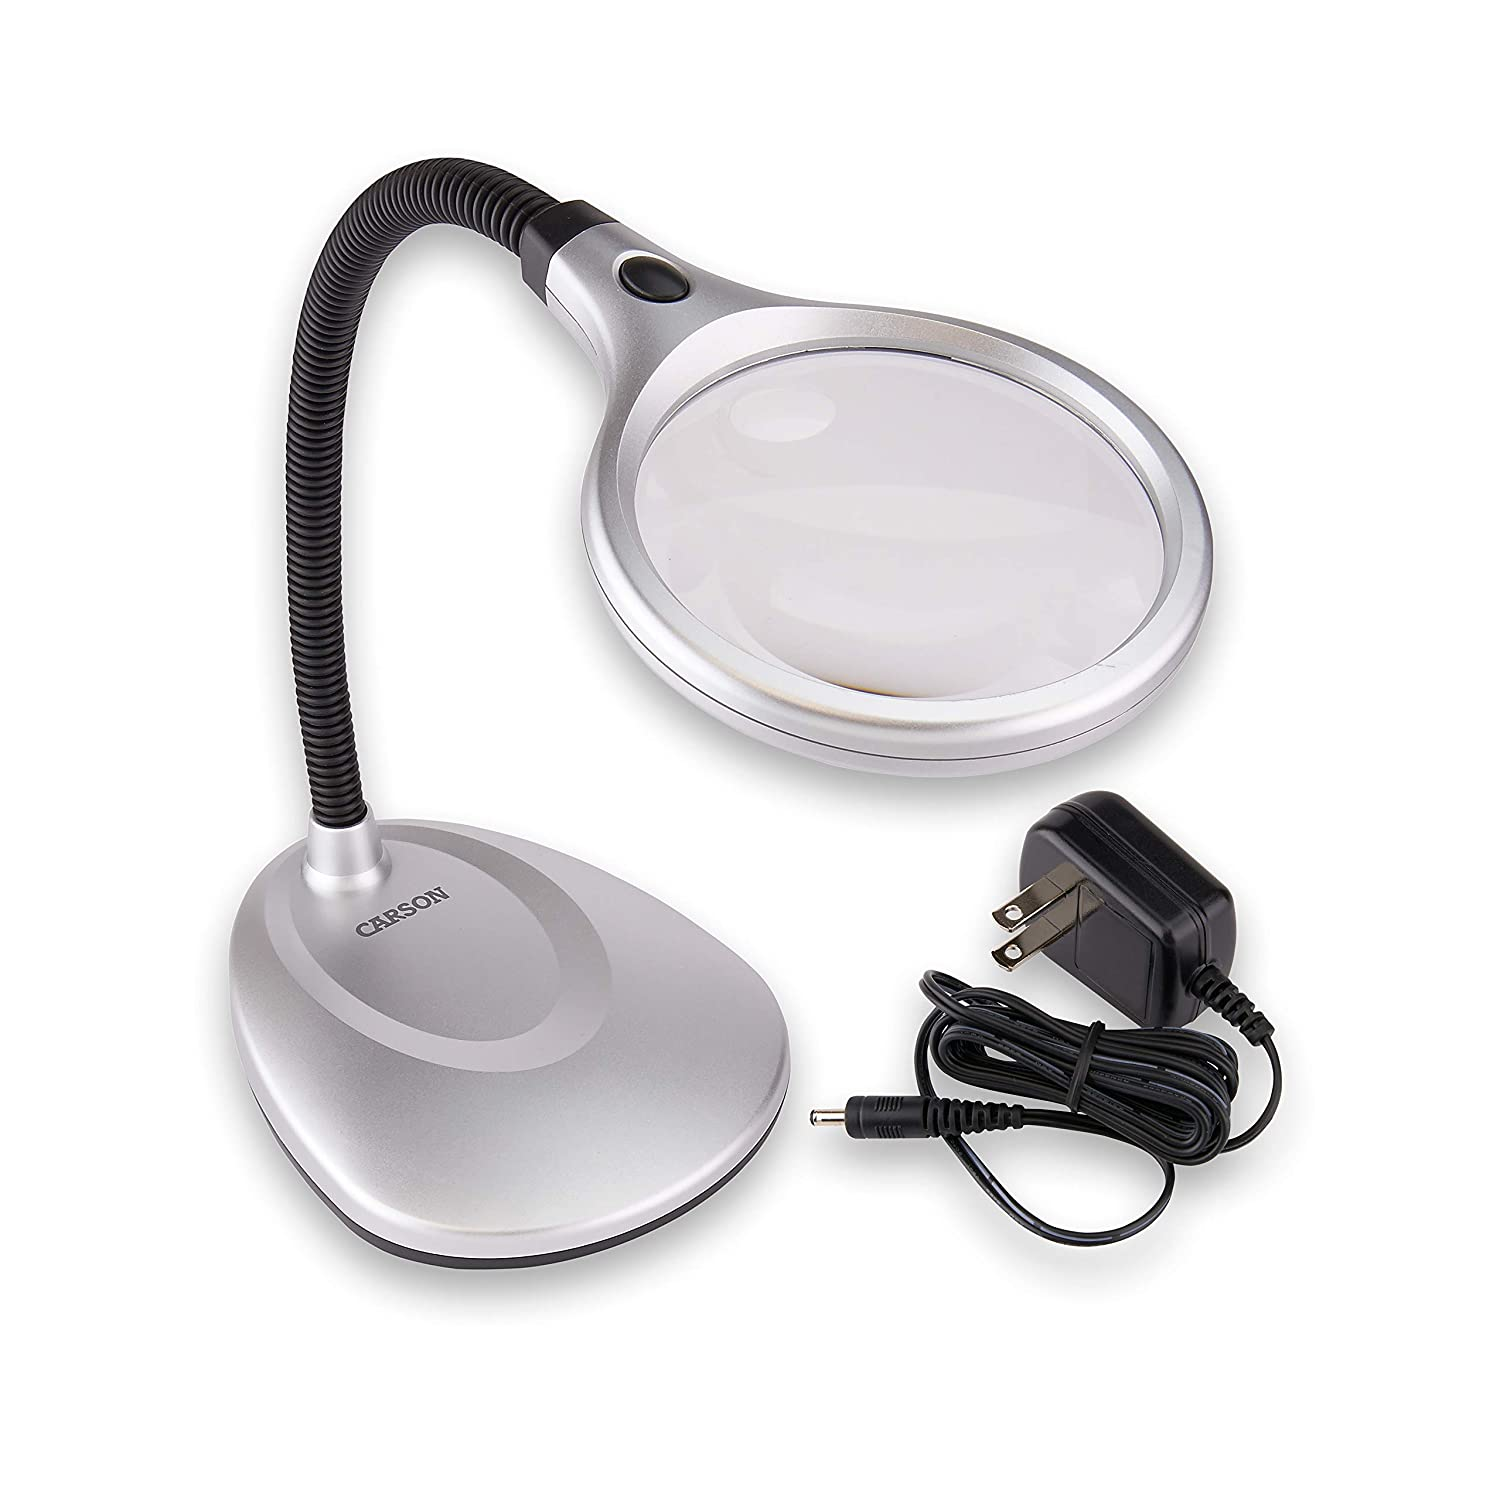 Top 10 Best Magnifying Lamp Reviews in 2021 5